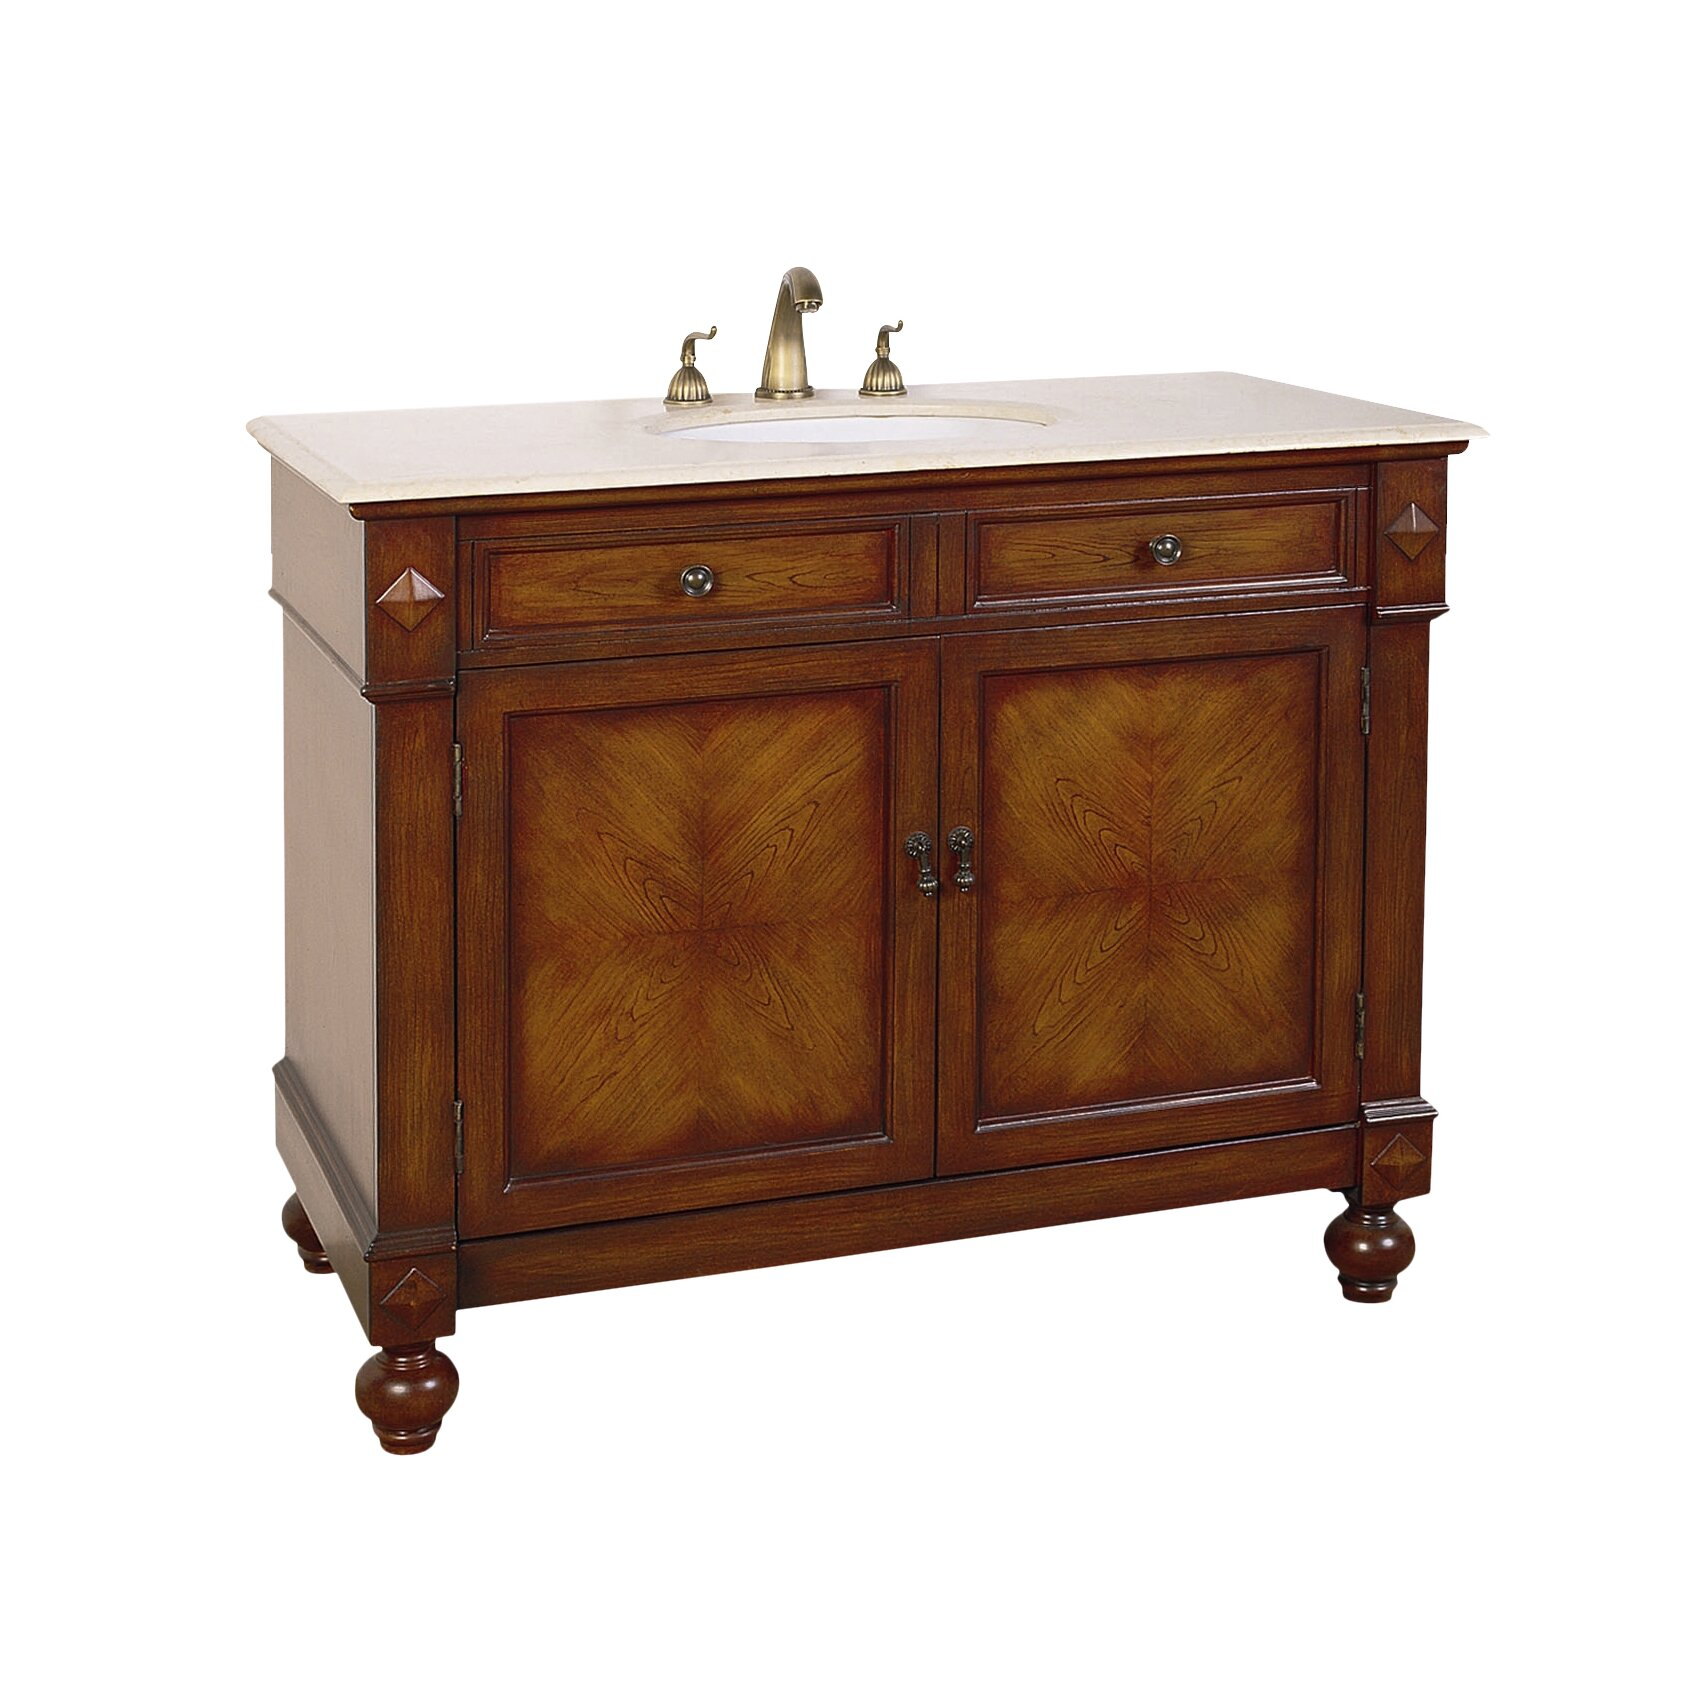 Legion furniture hatherleigh 42 single chest bathroom for Legion furniture 30 inch bathroom vanity